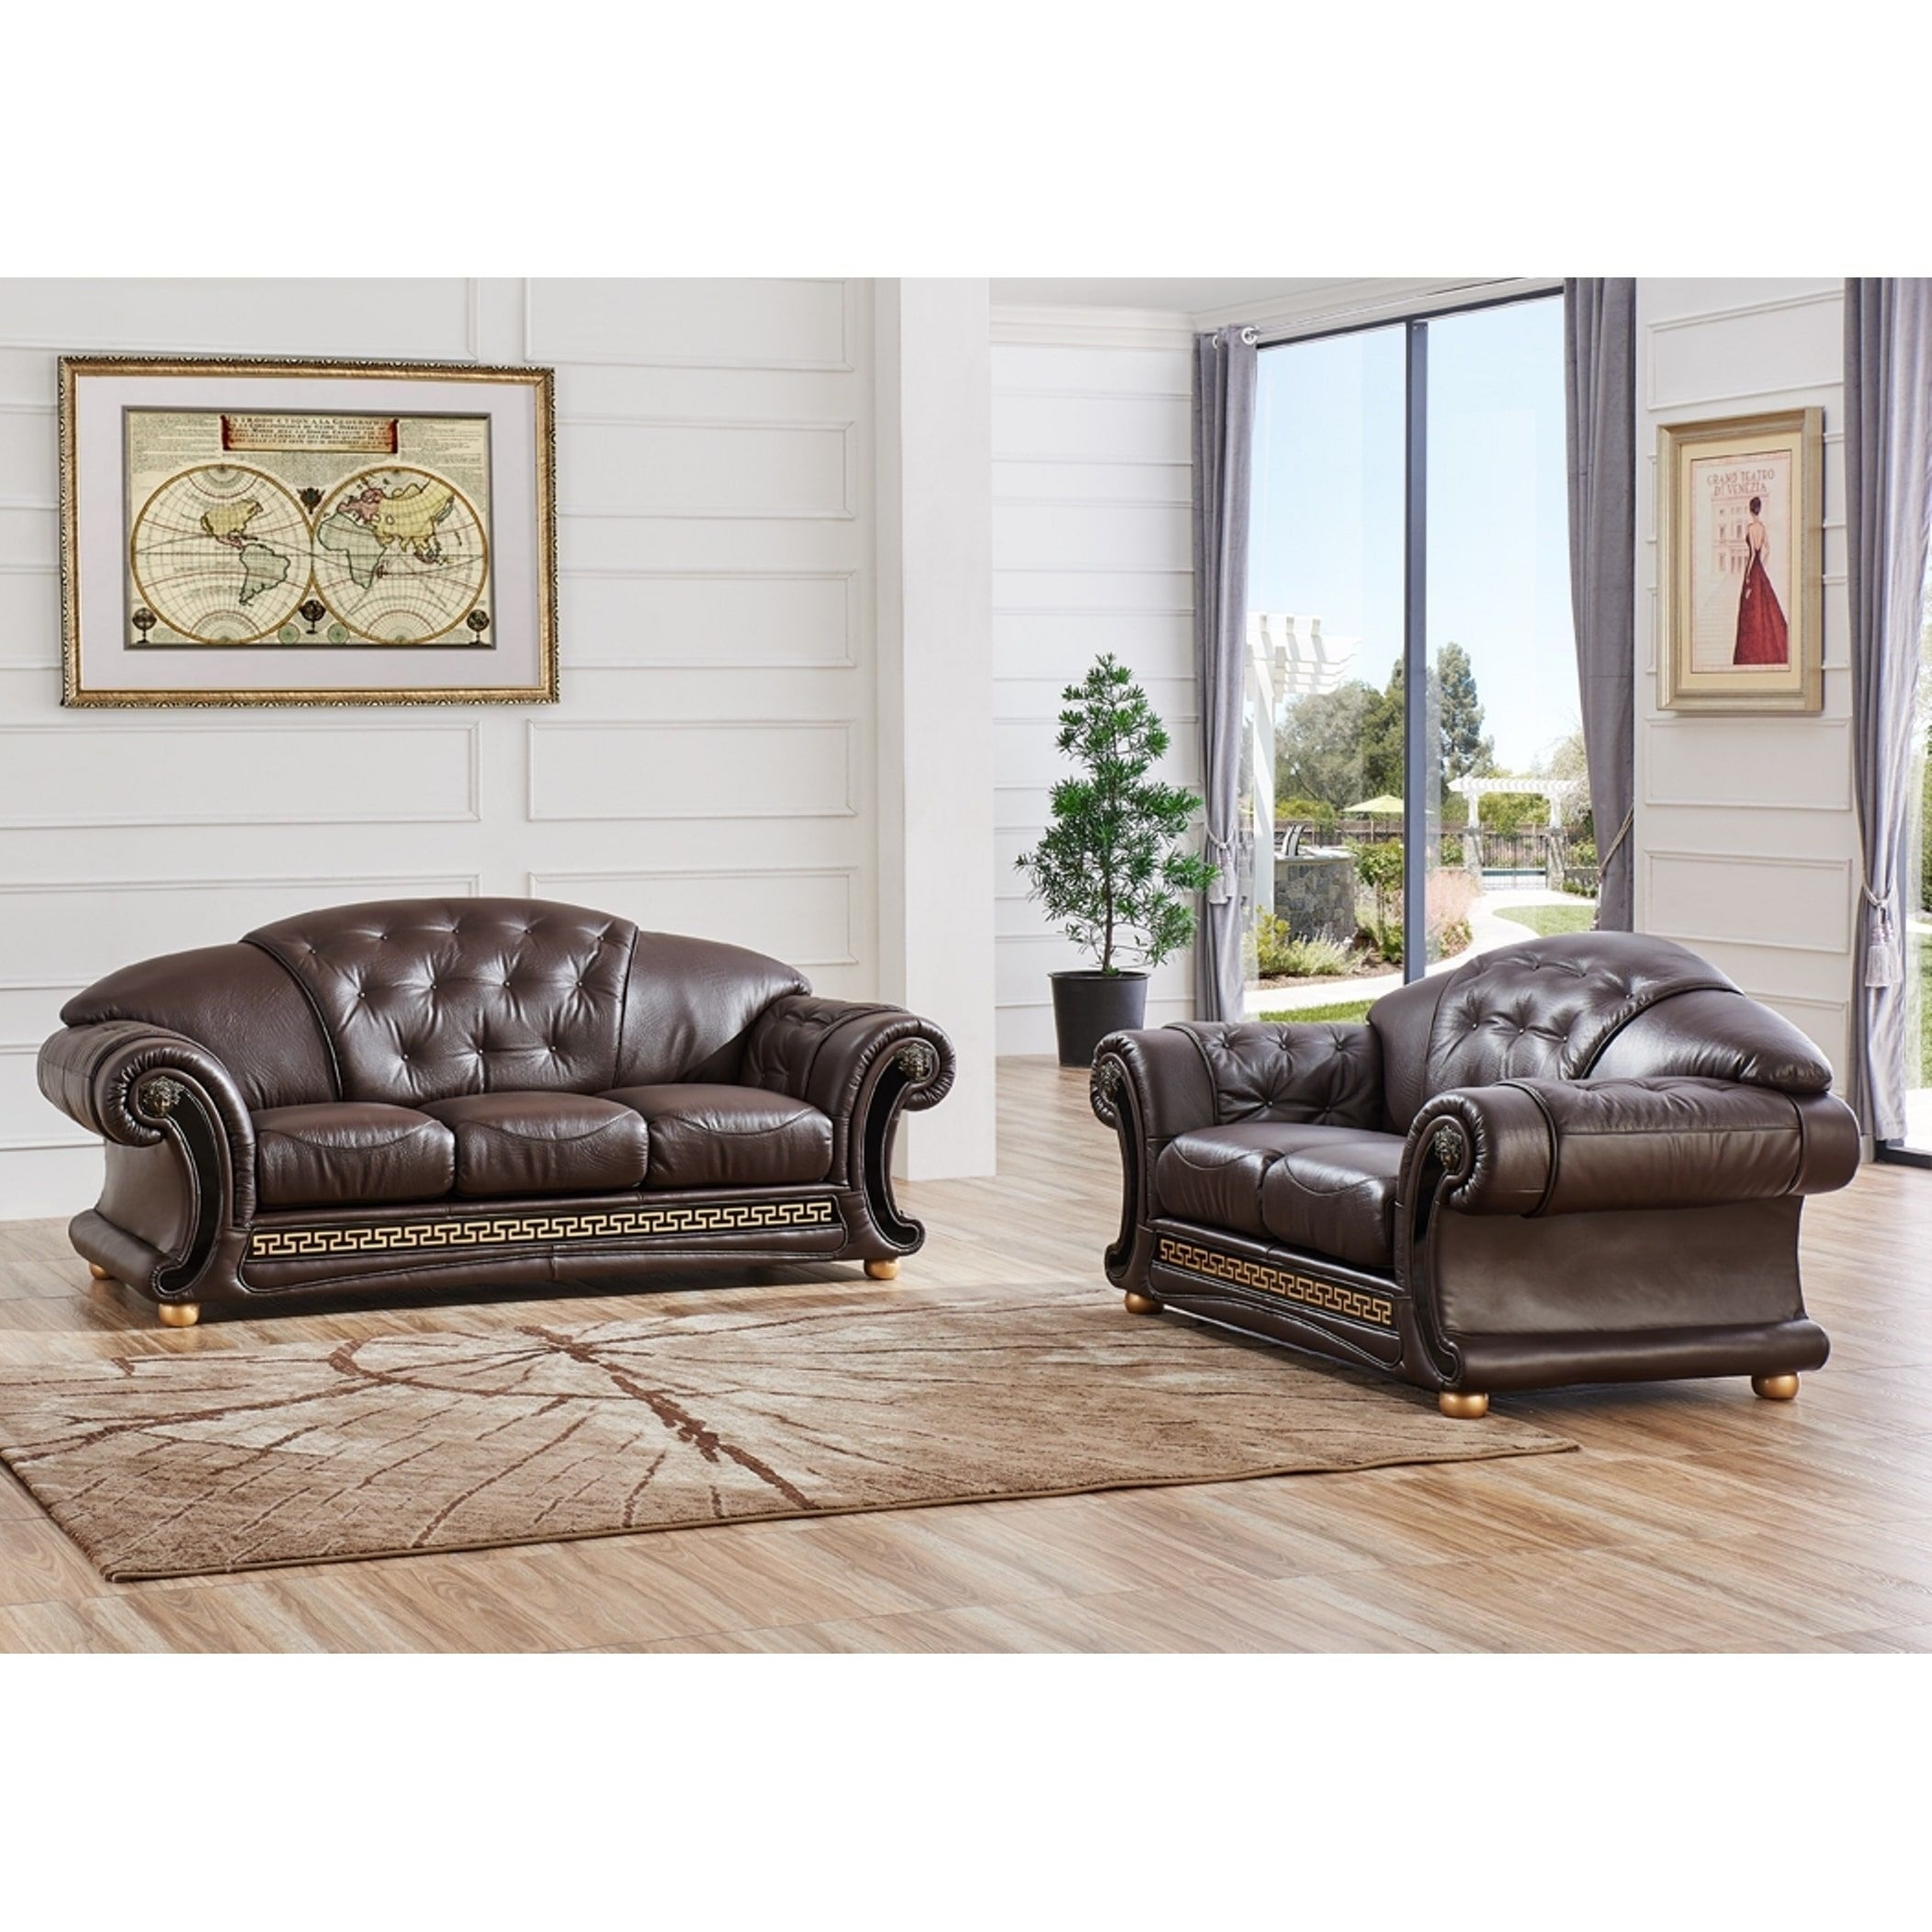 Luca Home 2-Piece Split Brown Leather Living Room Set (Brown Half regarding Clyde Saddle 3 Piece Power Reclining Sectionals With Power Headrest & Usb (Image 22 of 30)